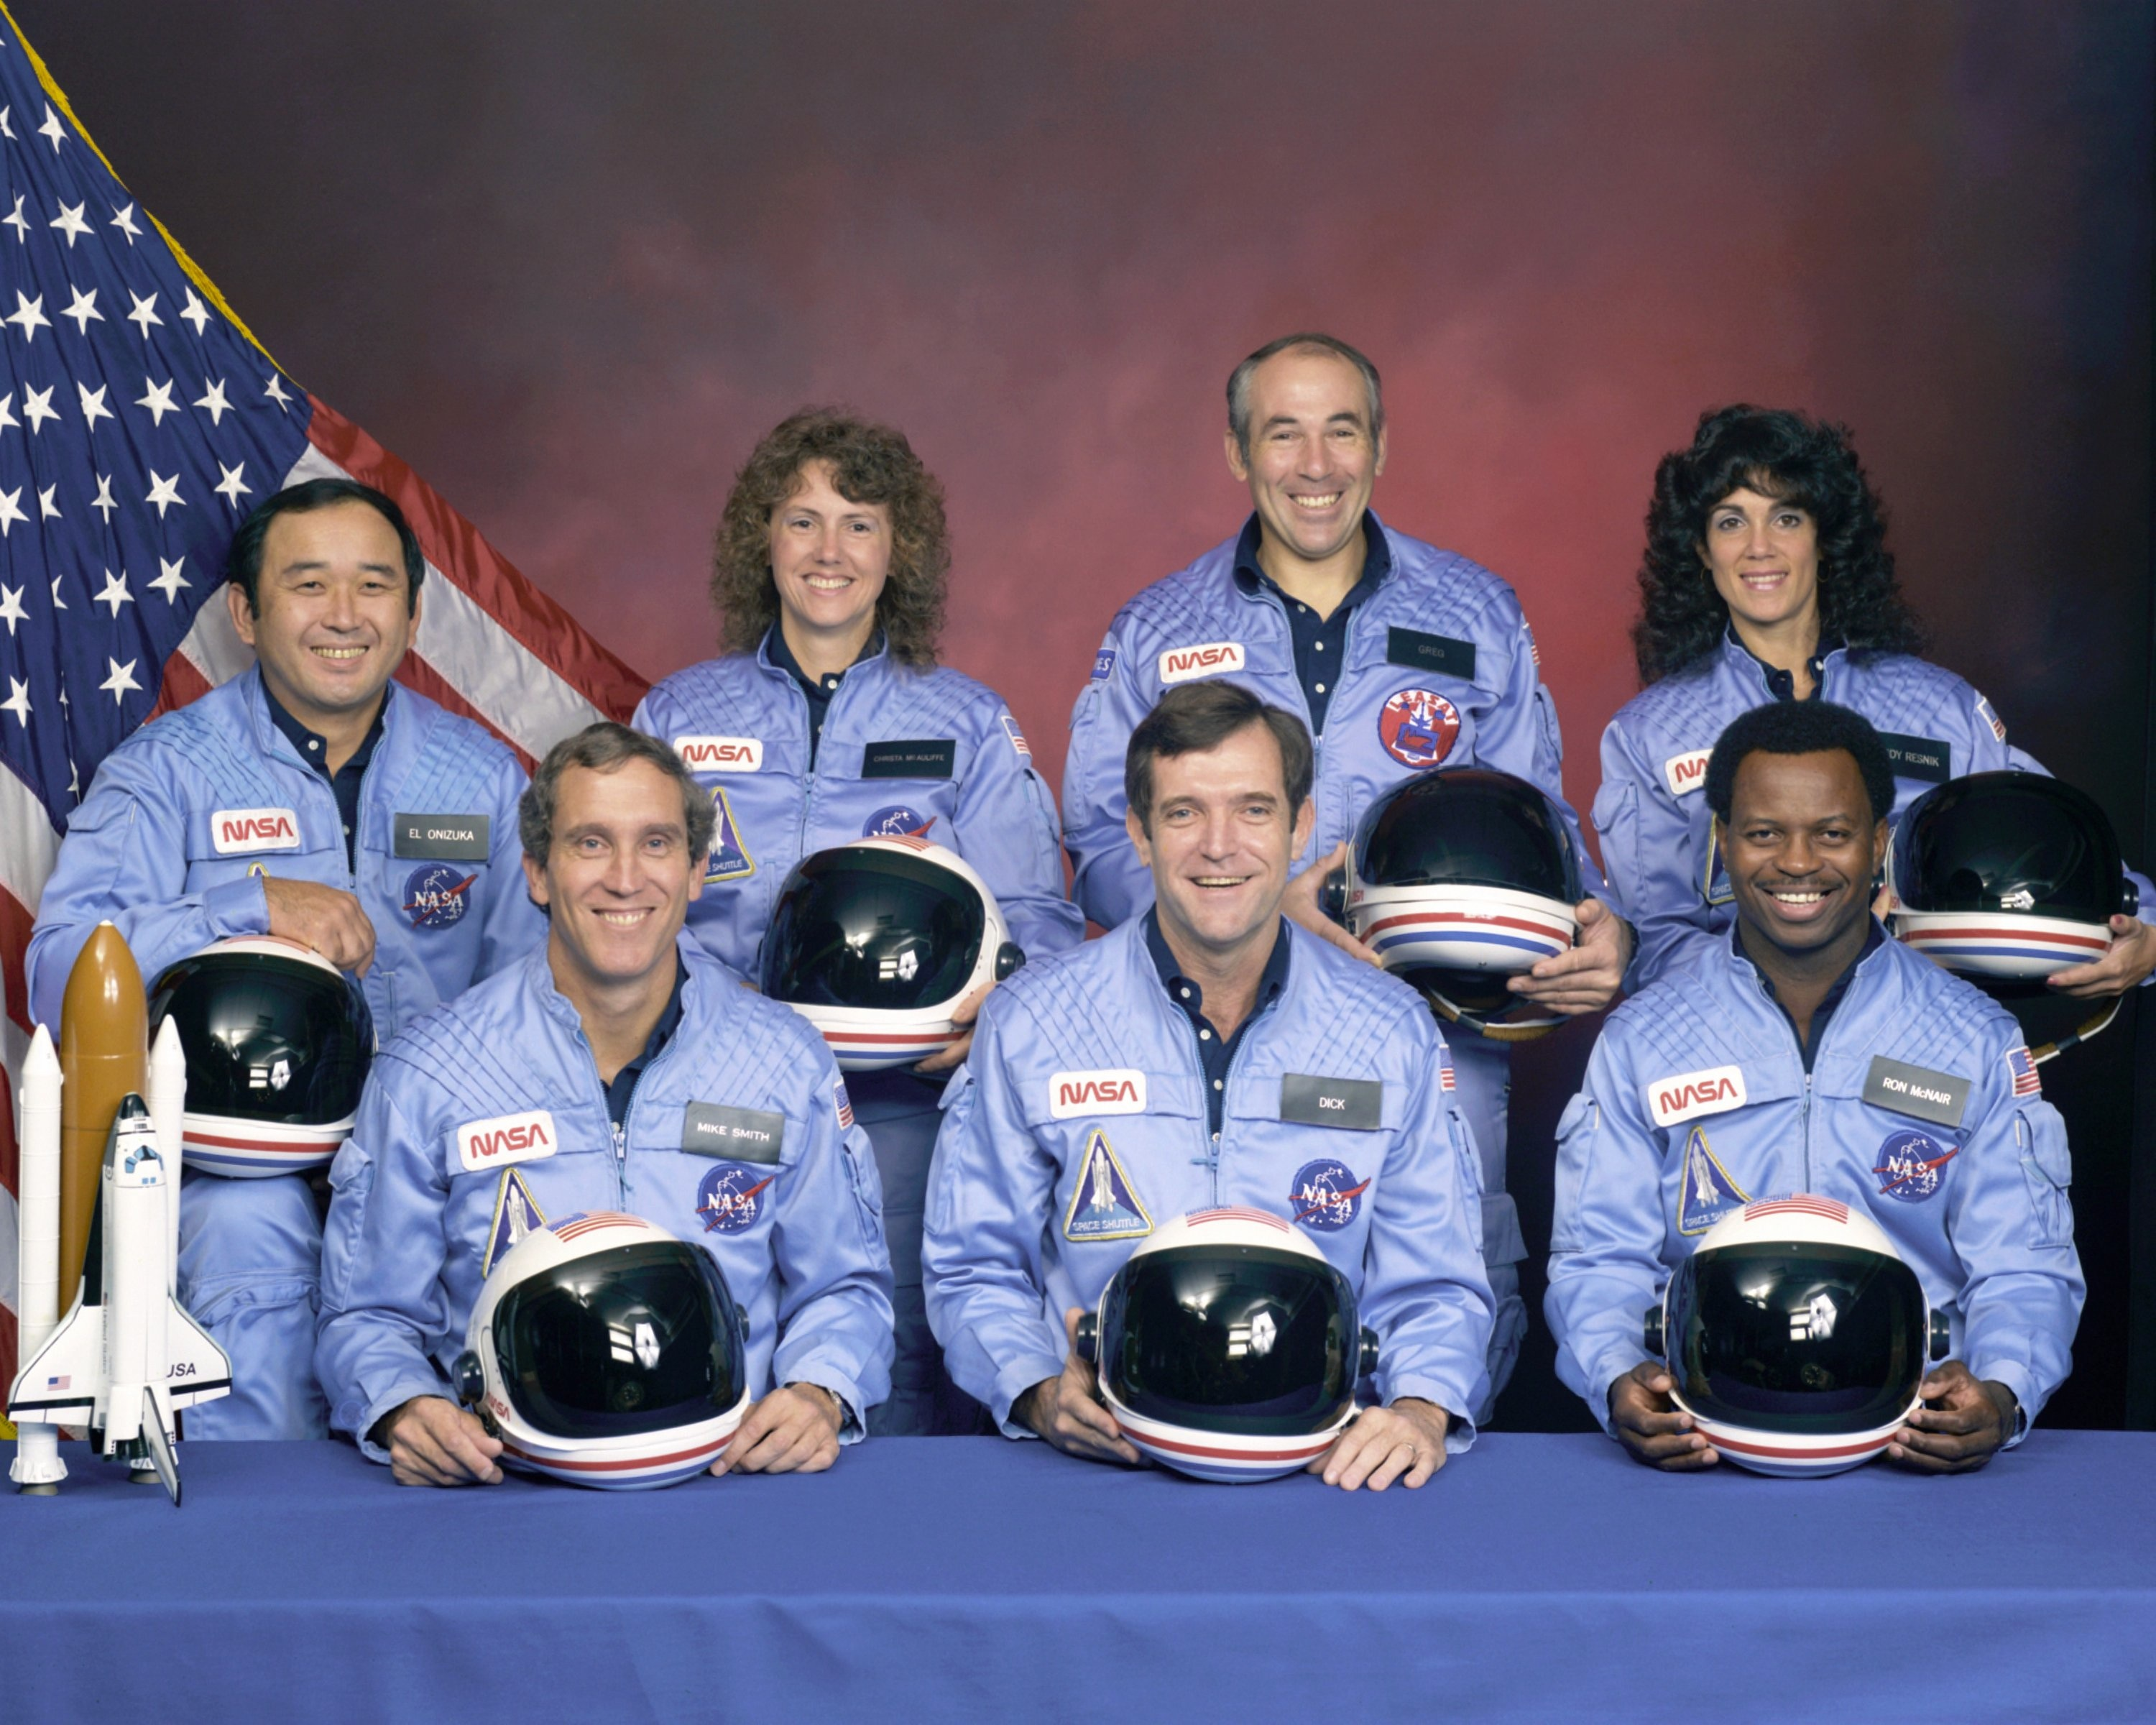 STS 51-L Challenger Crew